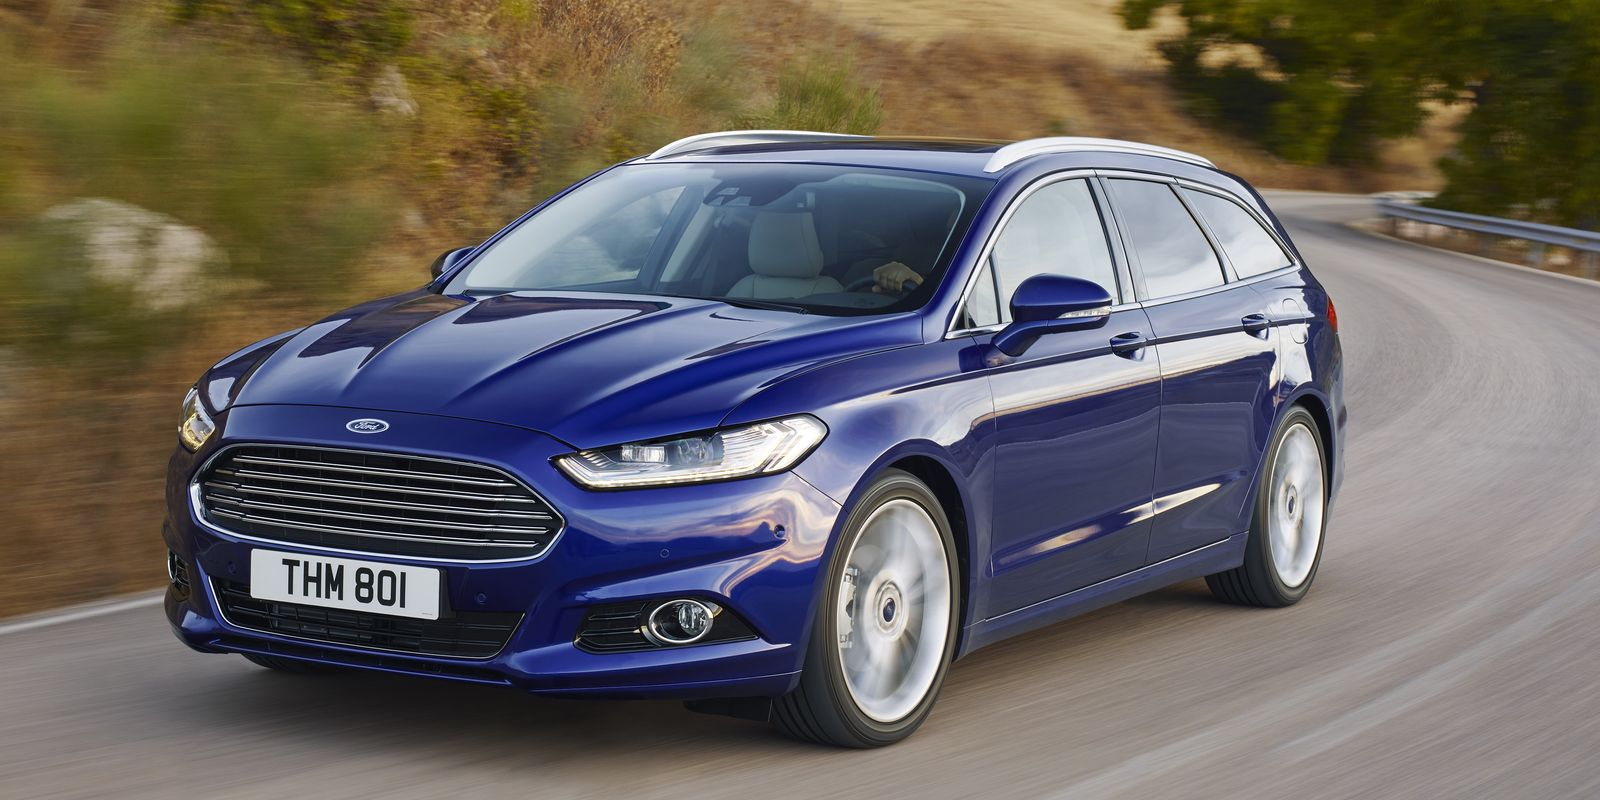 Ford Mondeo 2015 Interior >> Are there fewer car colour options than in the past? - Page 3 - General Gassing - PistonHeads